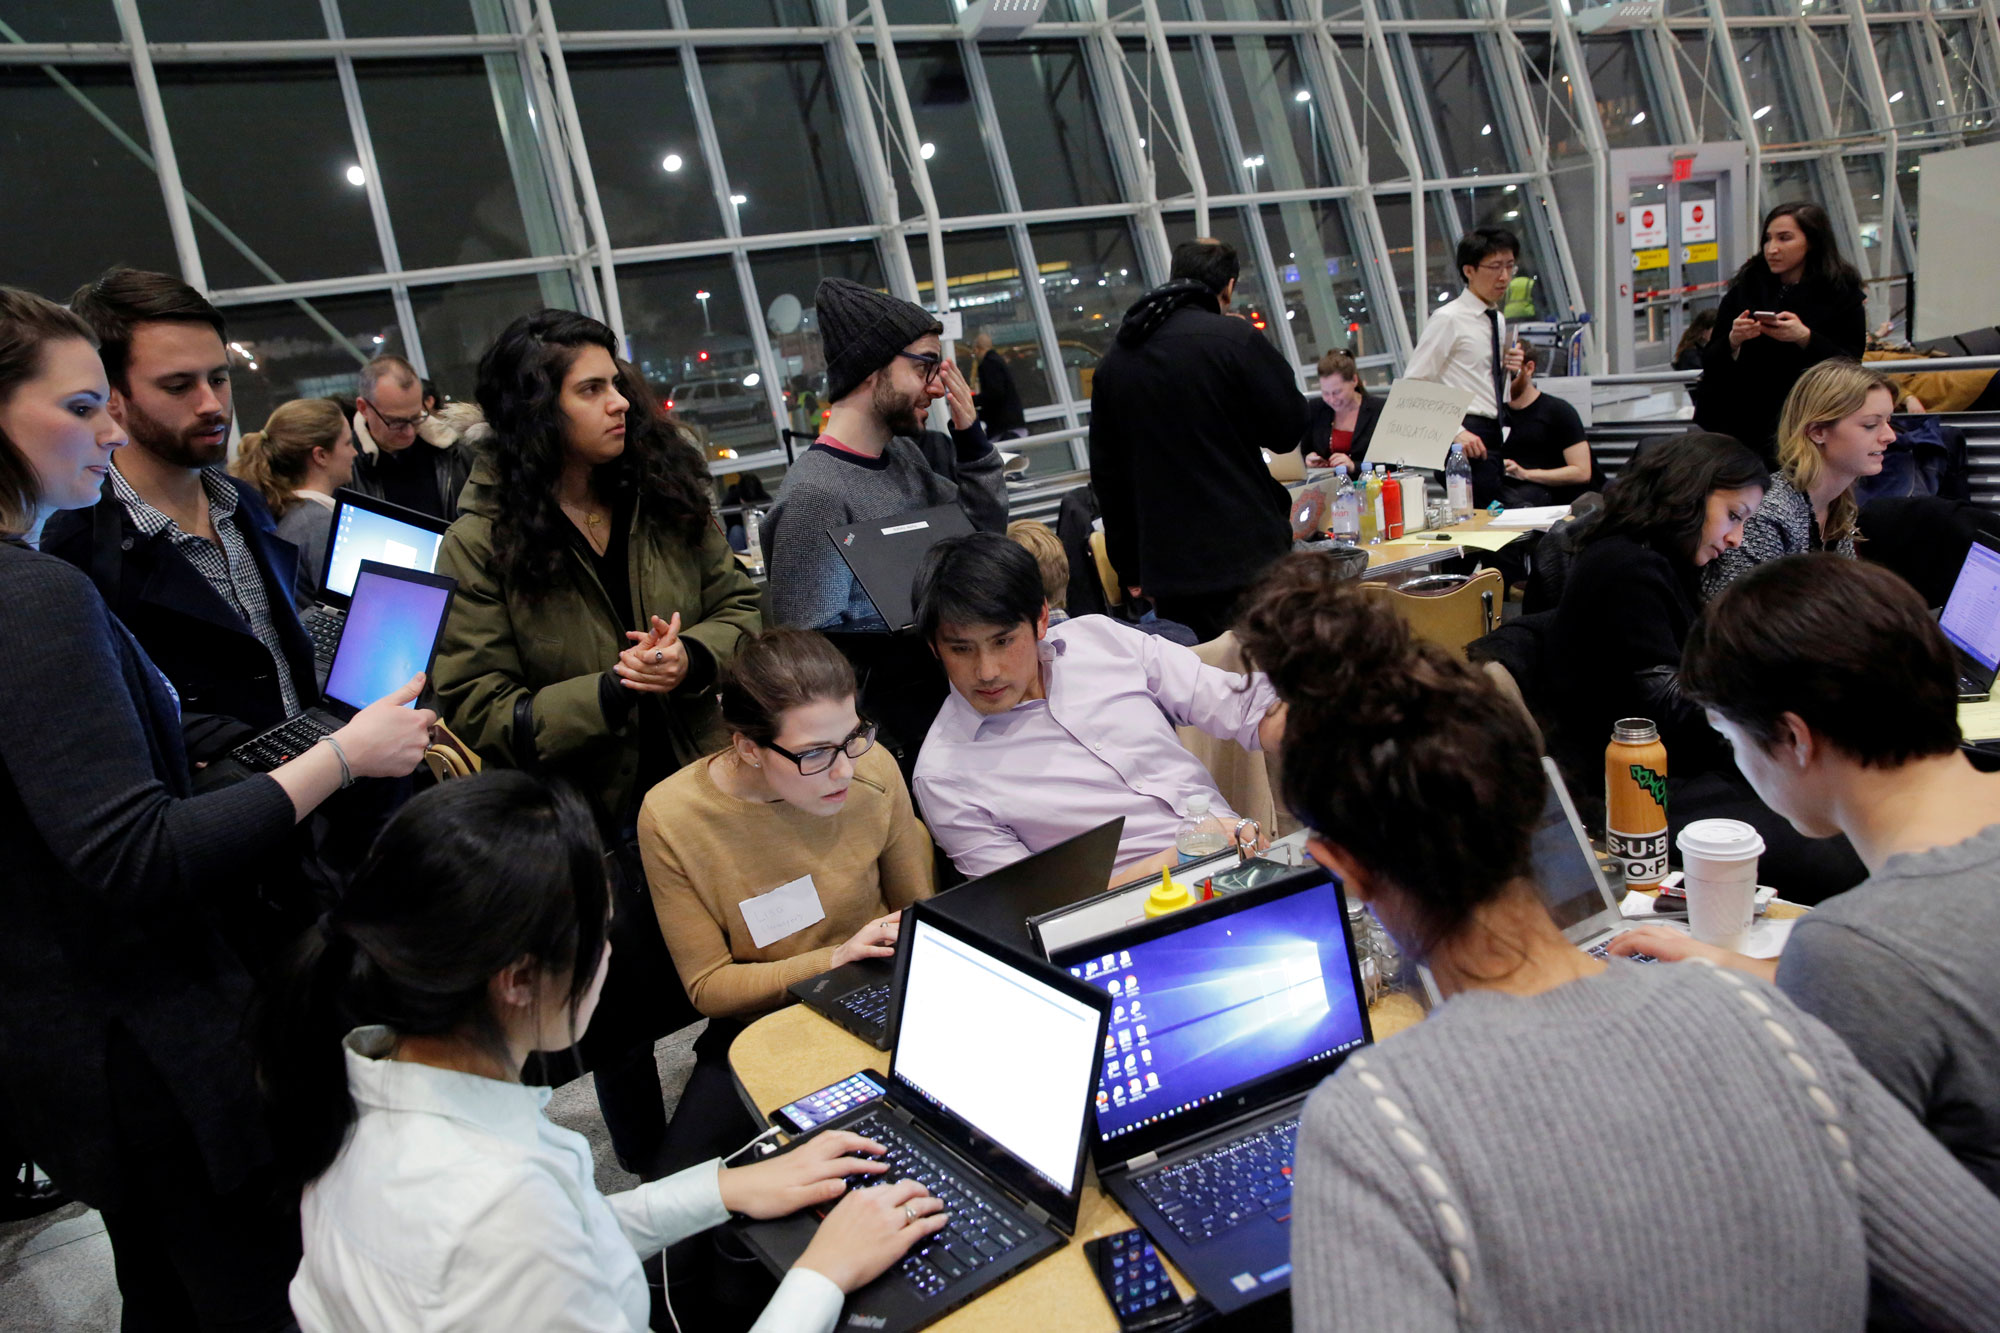 Volunteer lawyers work in a dining area of Terminal 4 to assist travelers detained as part of Donald Trump's travel ban in Terminal 4 at John F. Kennedy International Airport.